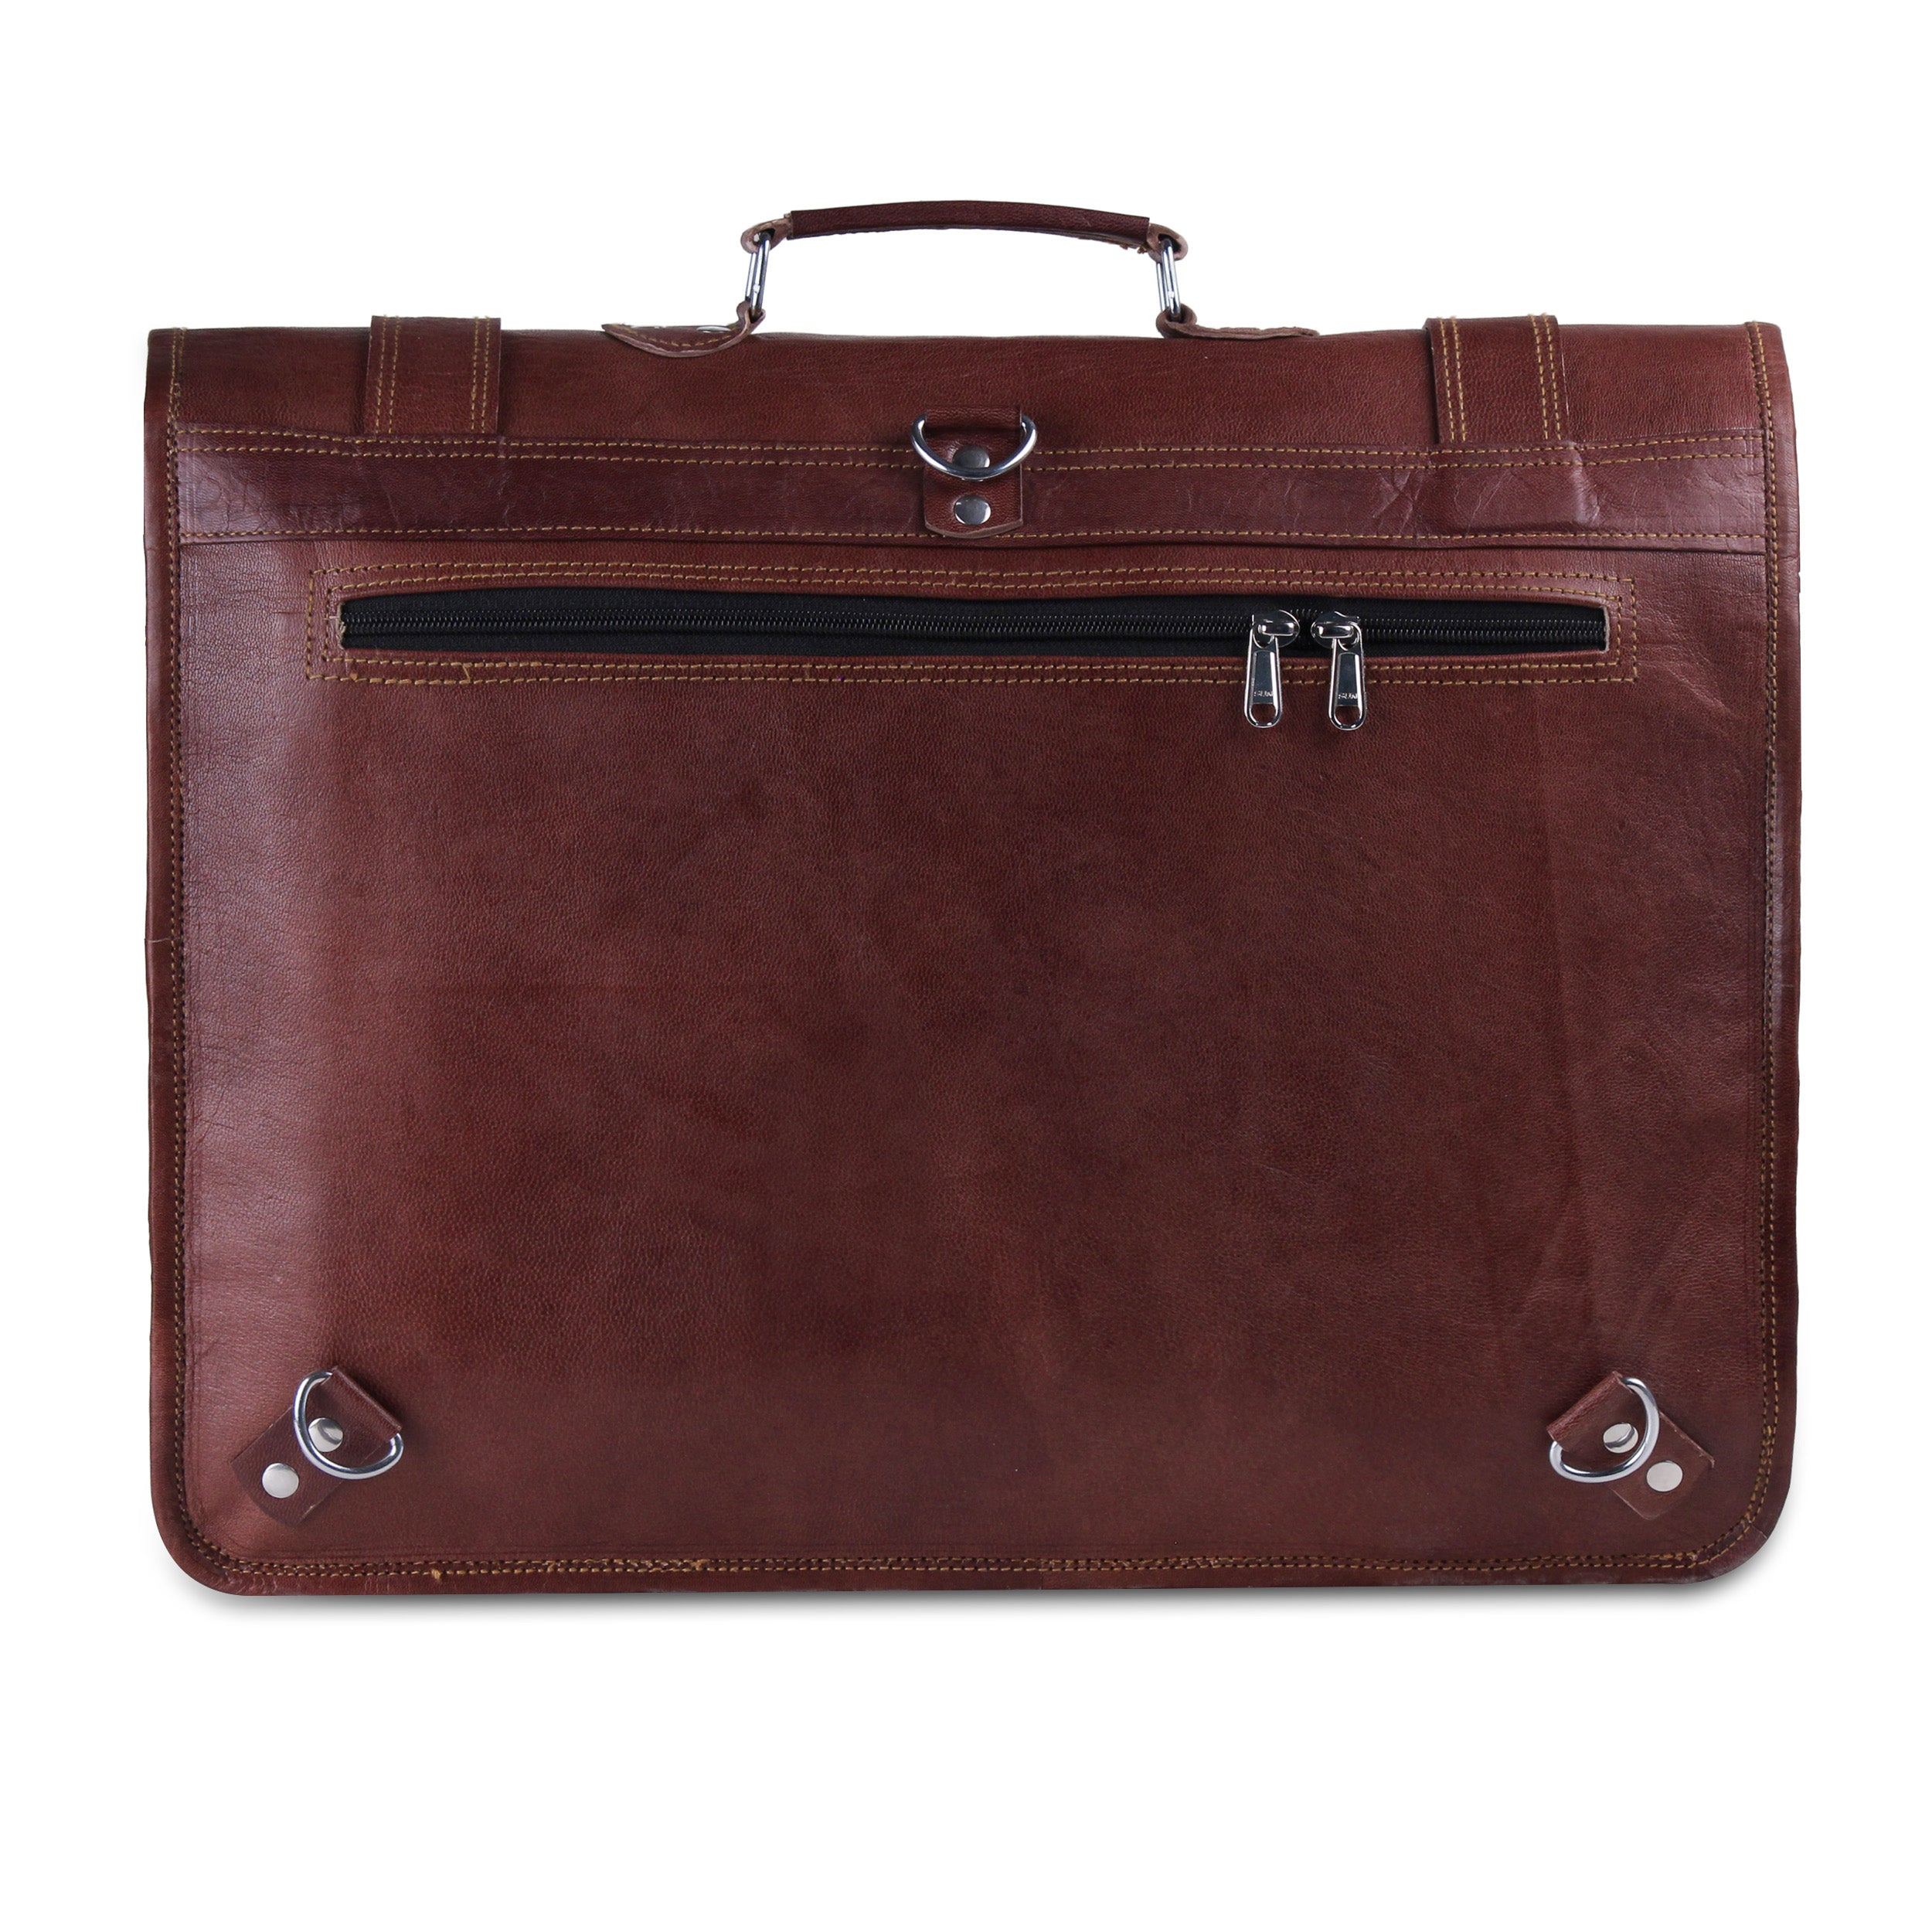 Leather Messenger Bag with convertible straps